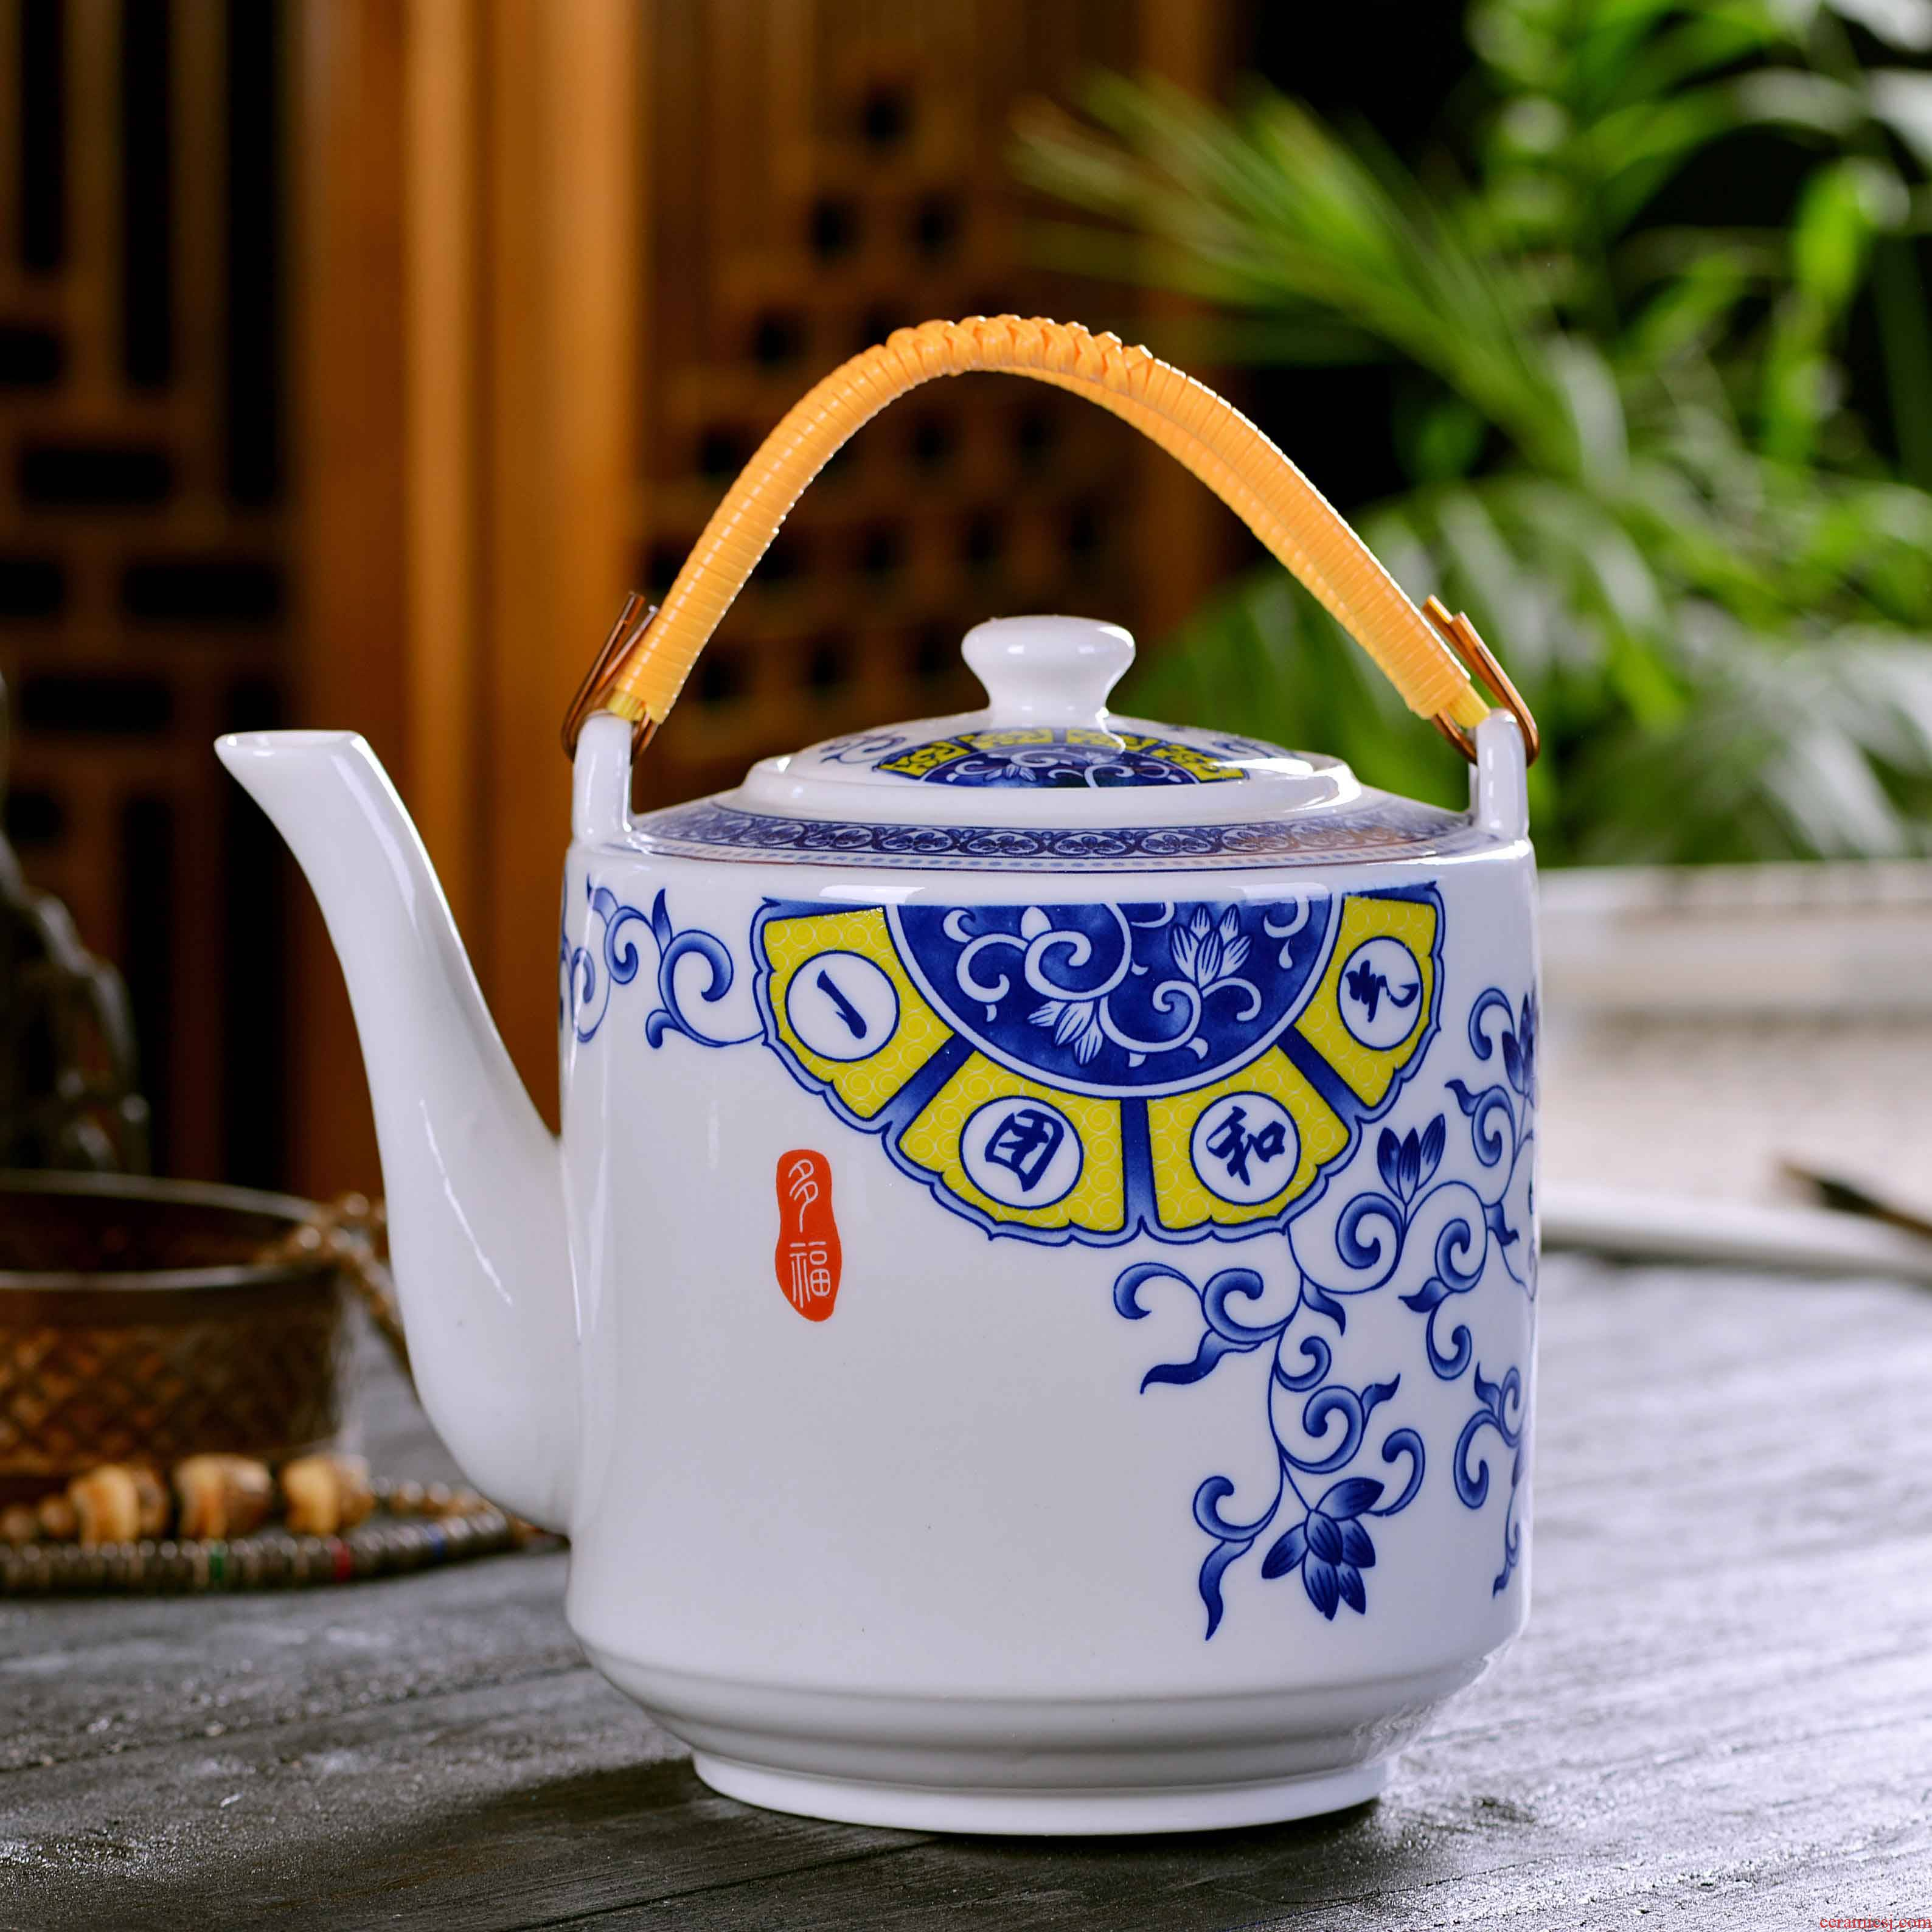 Ceramic pot hot pot of large blue and white girder pot of tea set with white porcelain pot of hot water